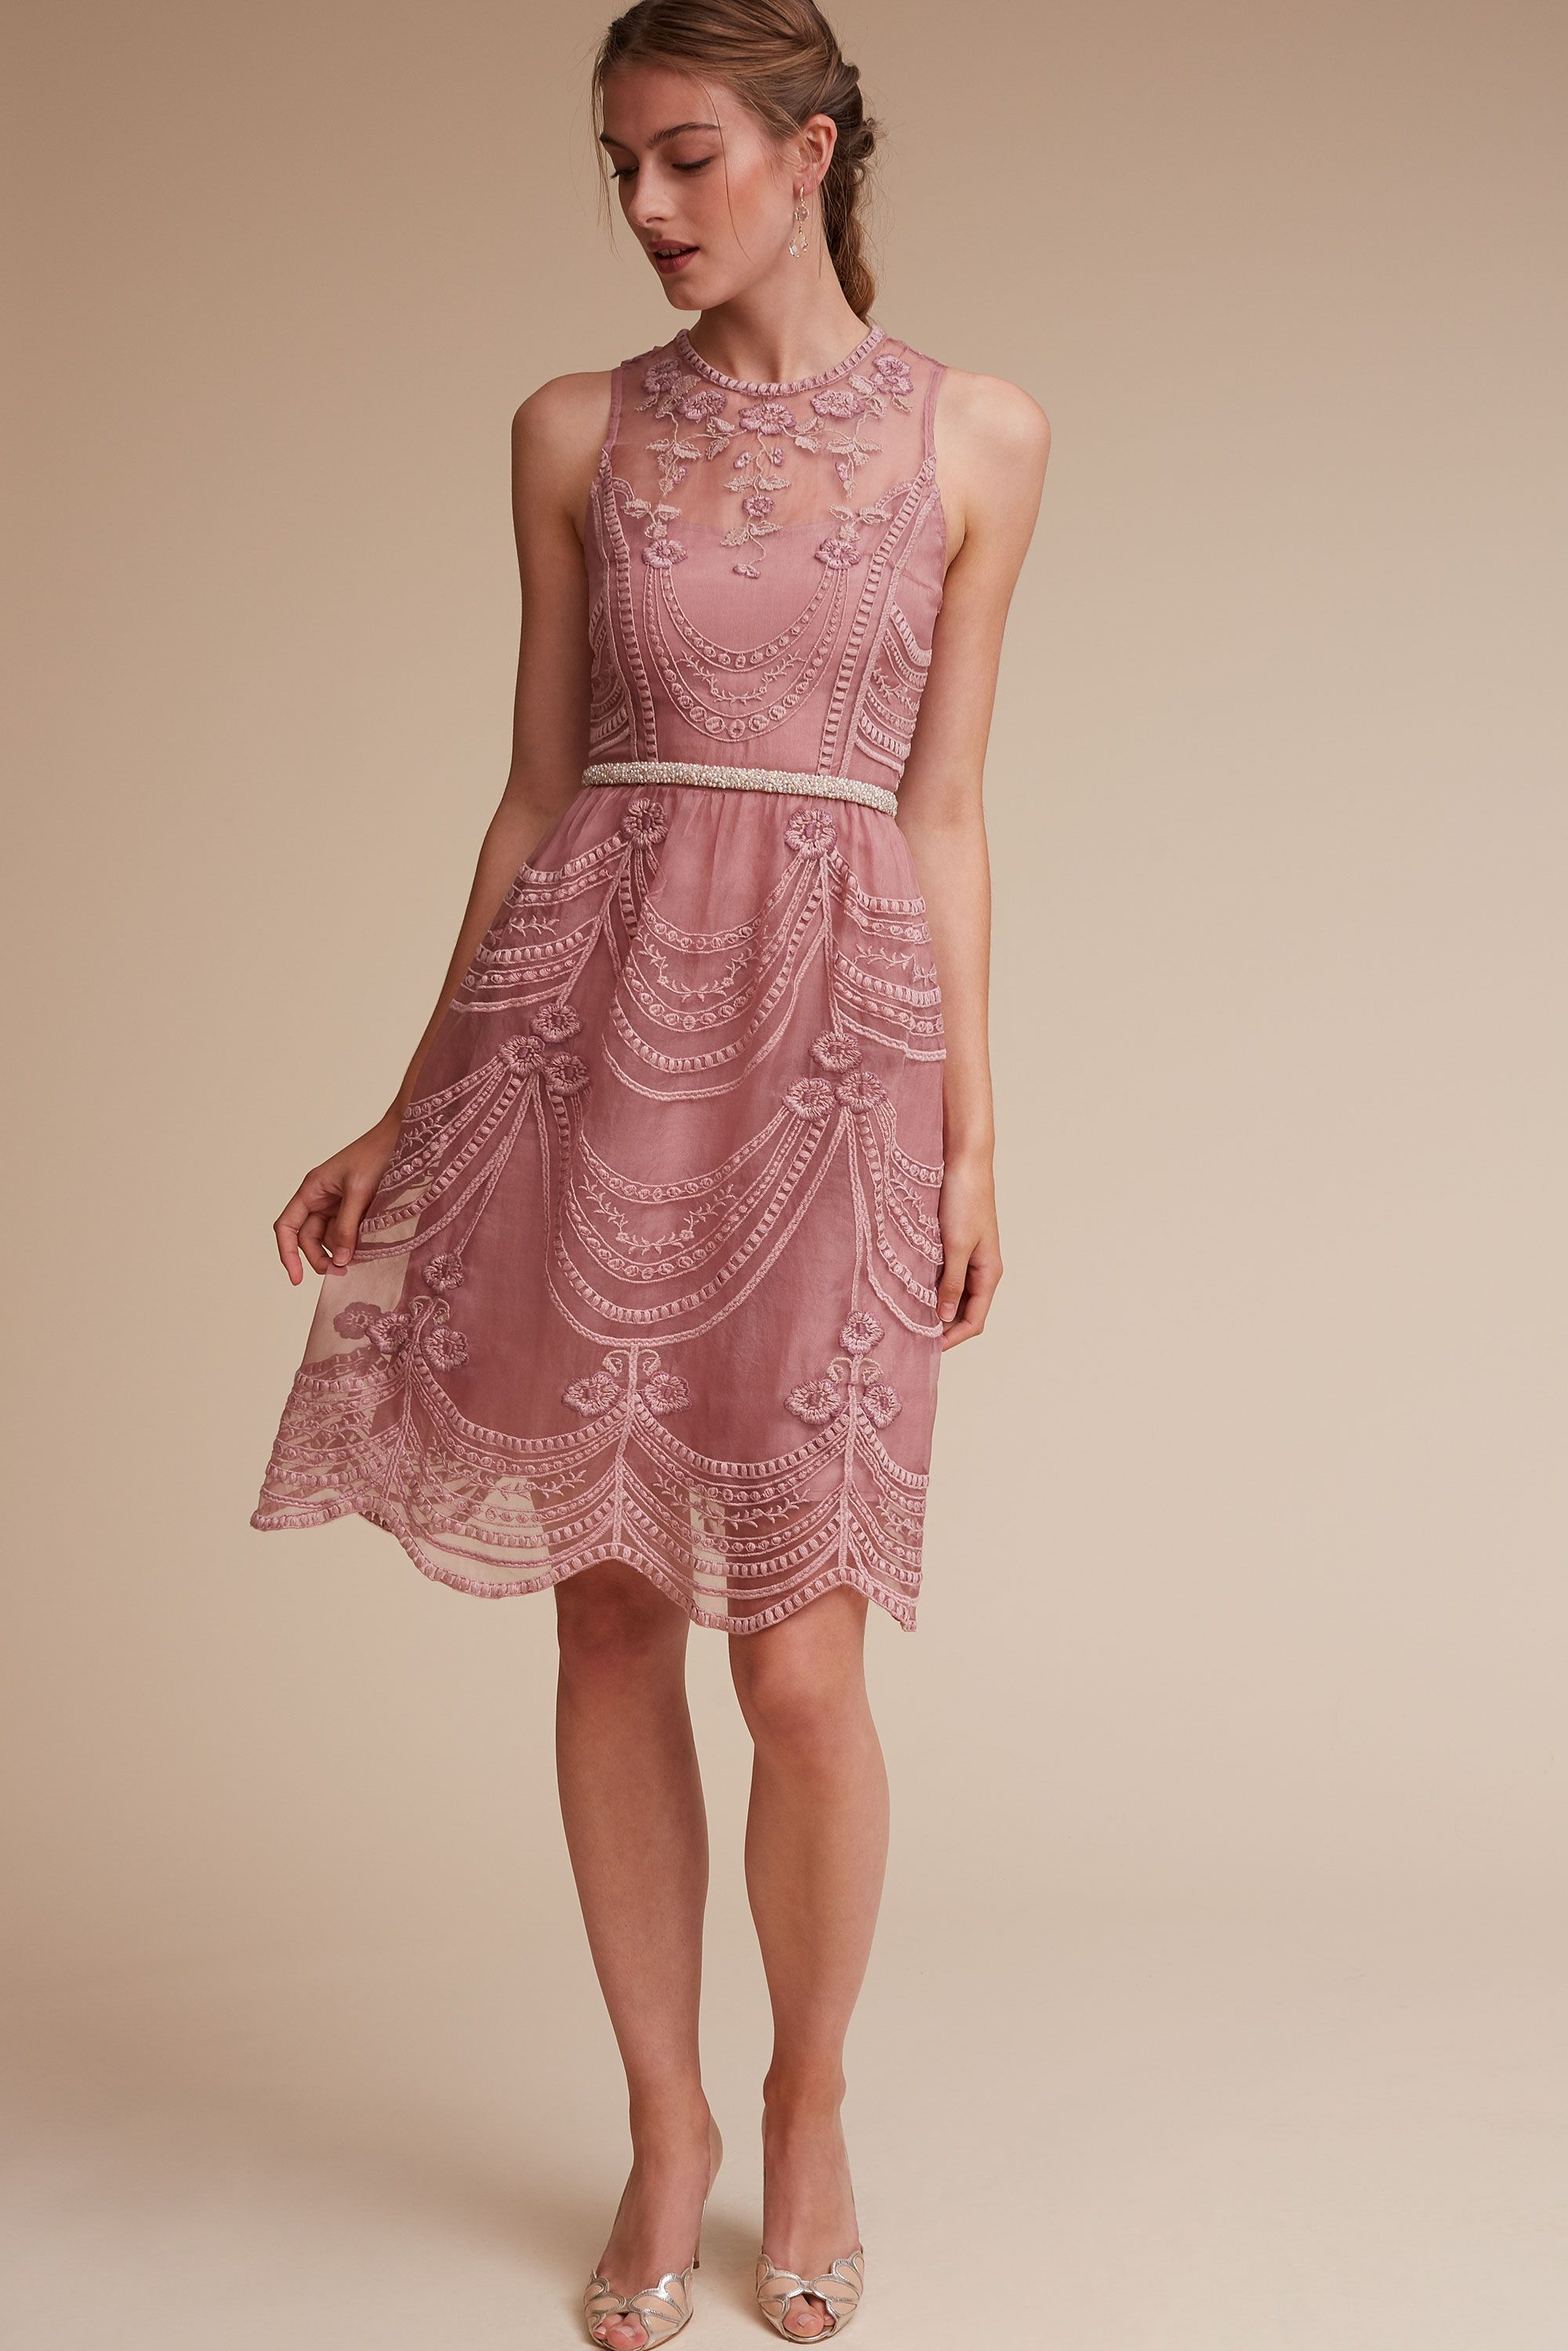 Wedding day guest dresses  Anessa Dress from BHLDN  For your friends on your special day